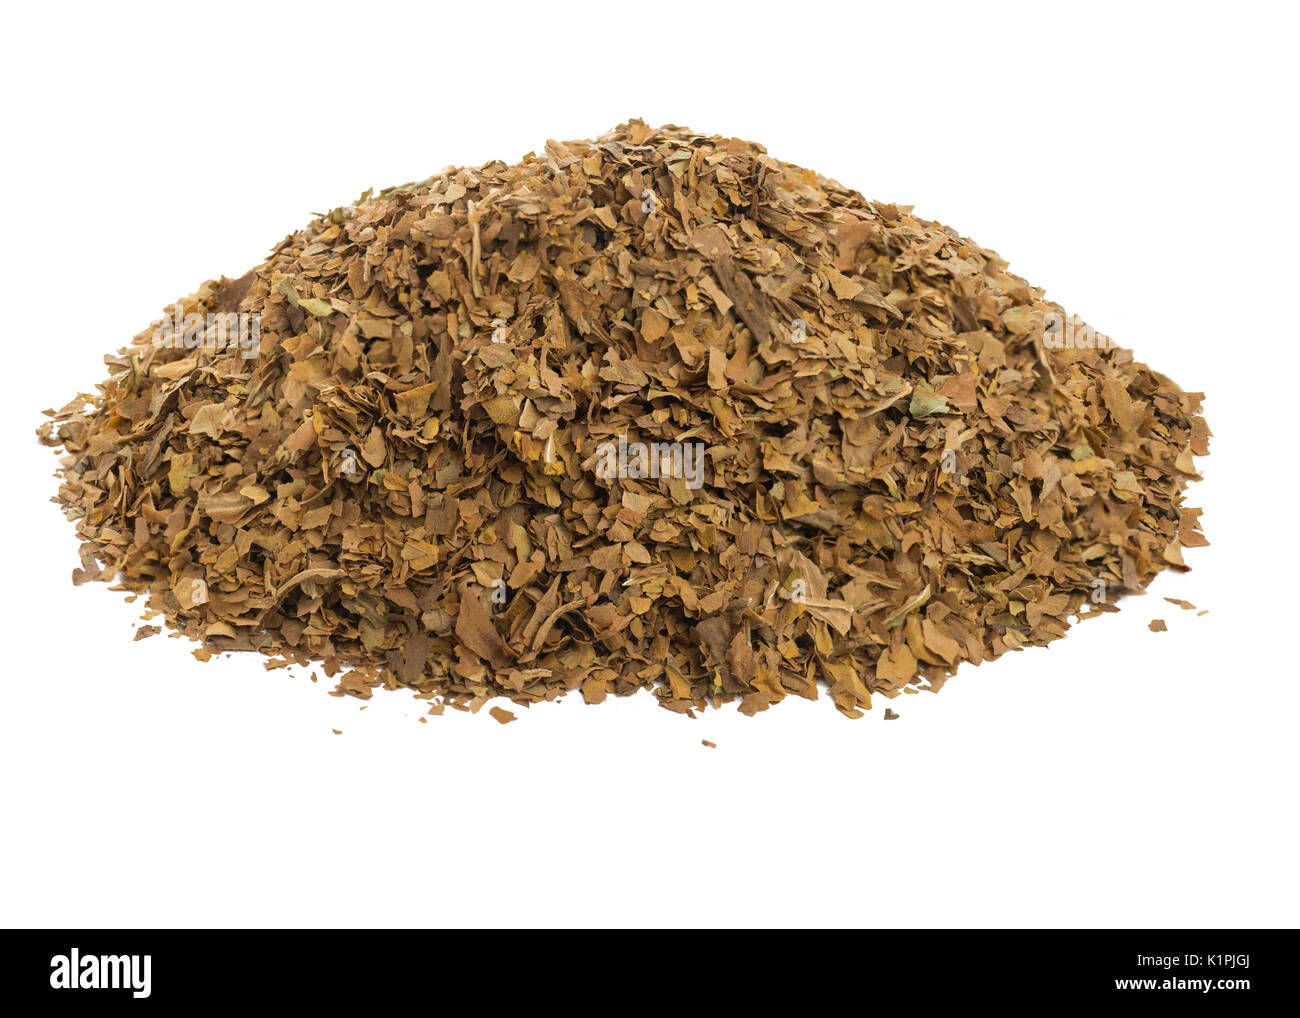 pile of unprocessed dried tobacco leaves, on a  white isolated background. - Stock Image